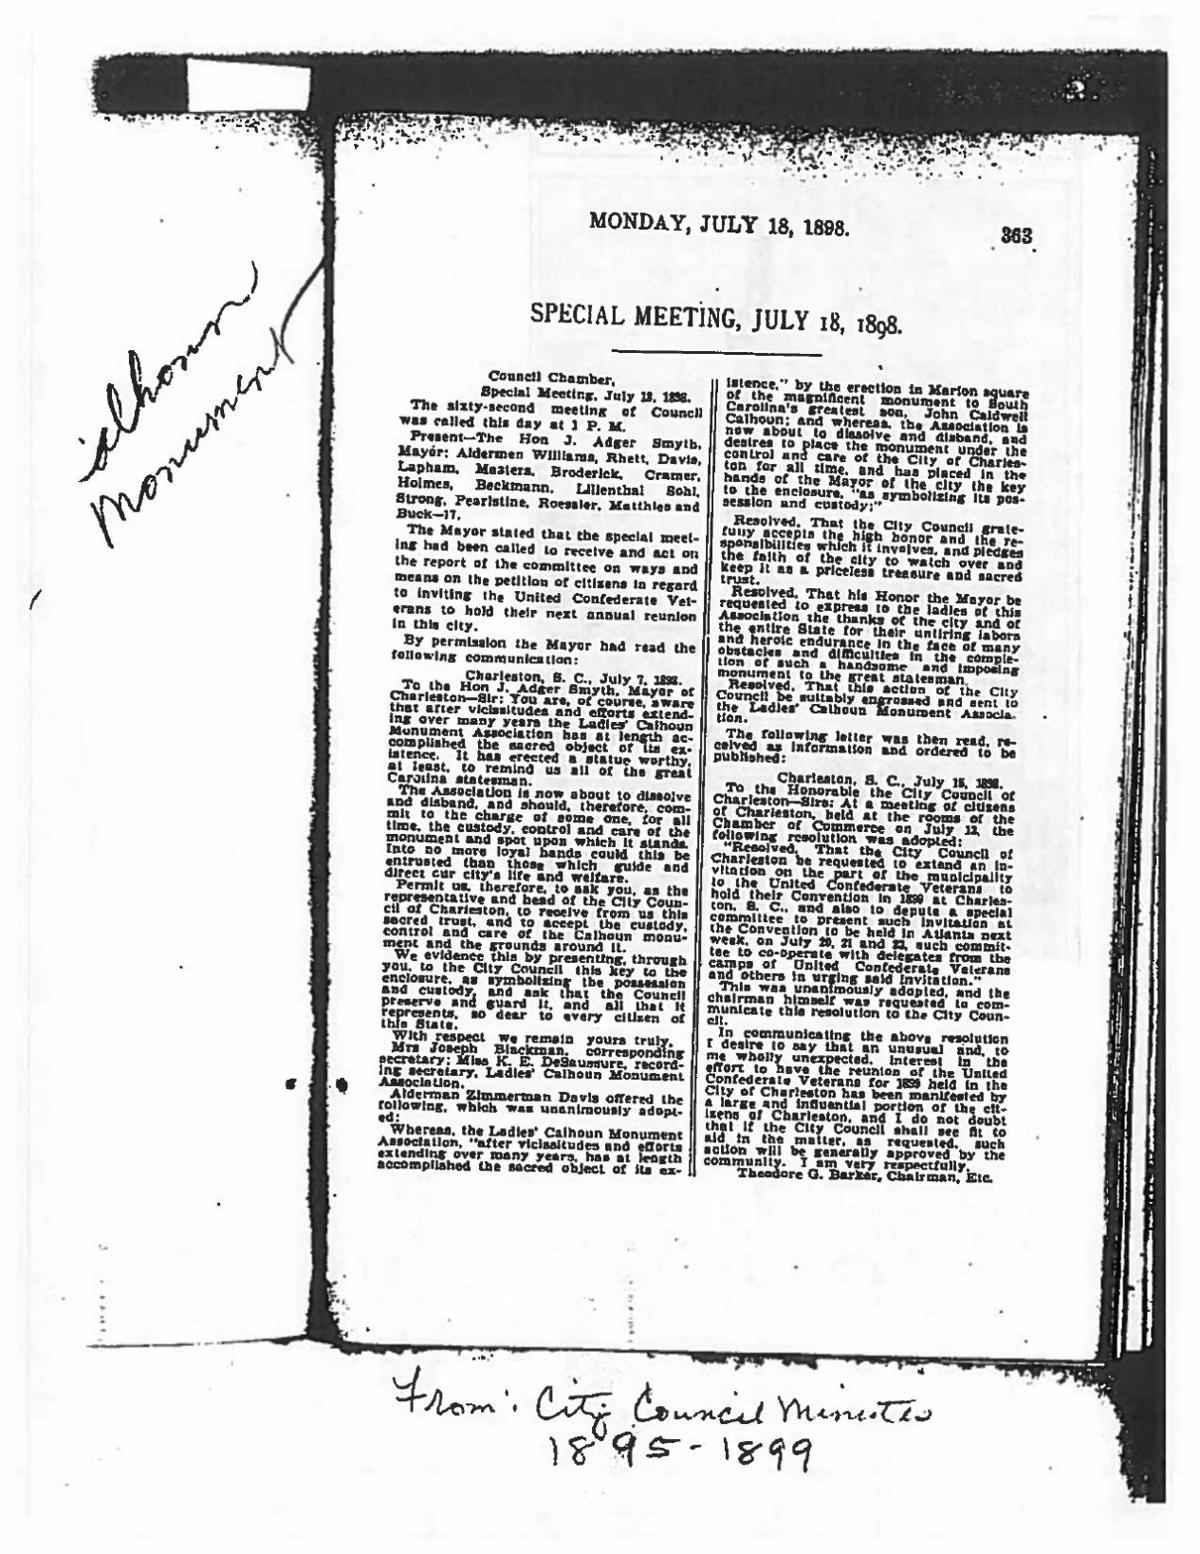 City Council Meeting Minutes July 18, 1898